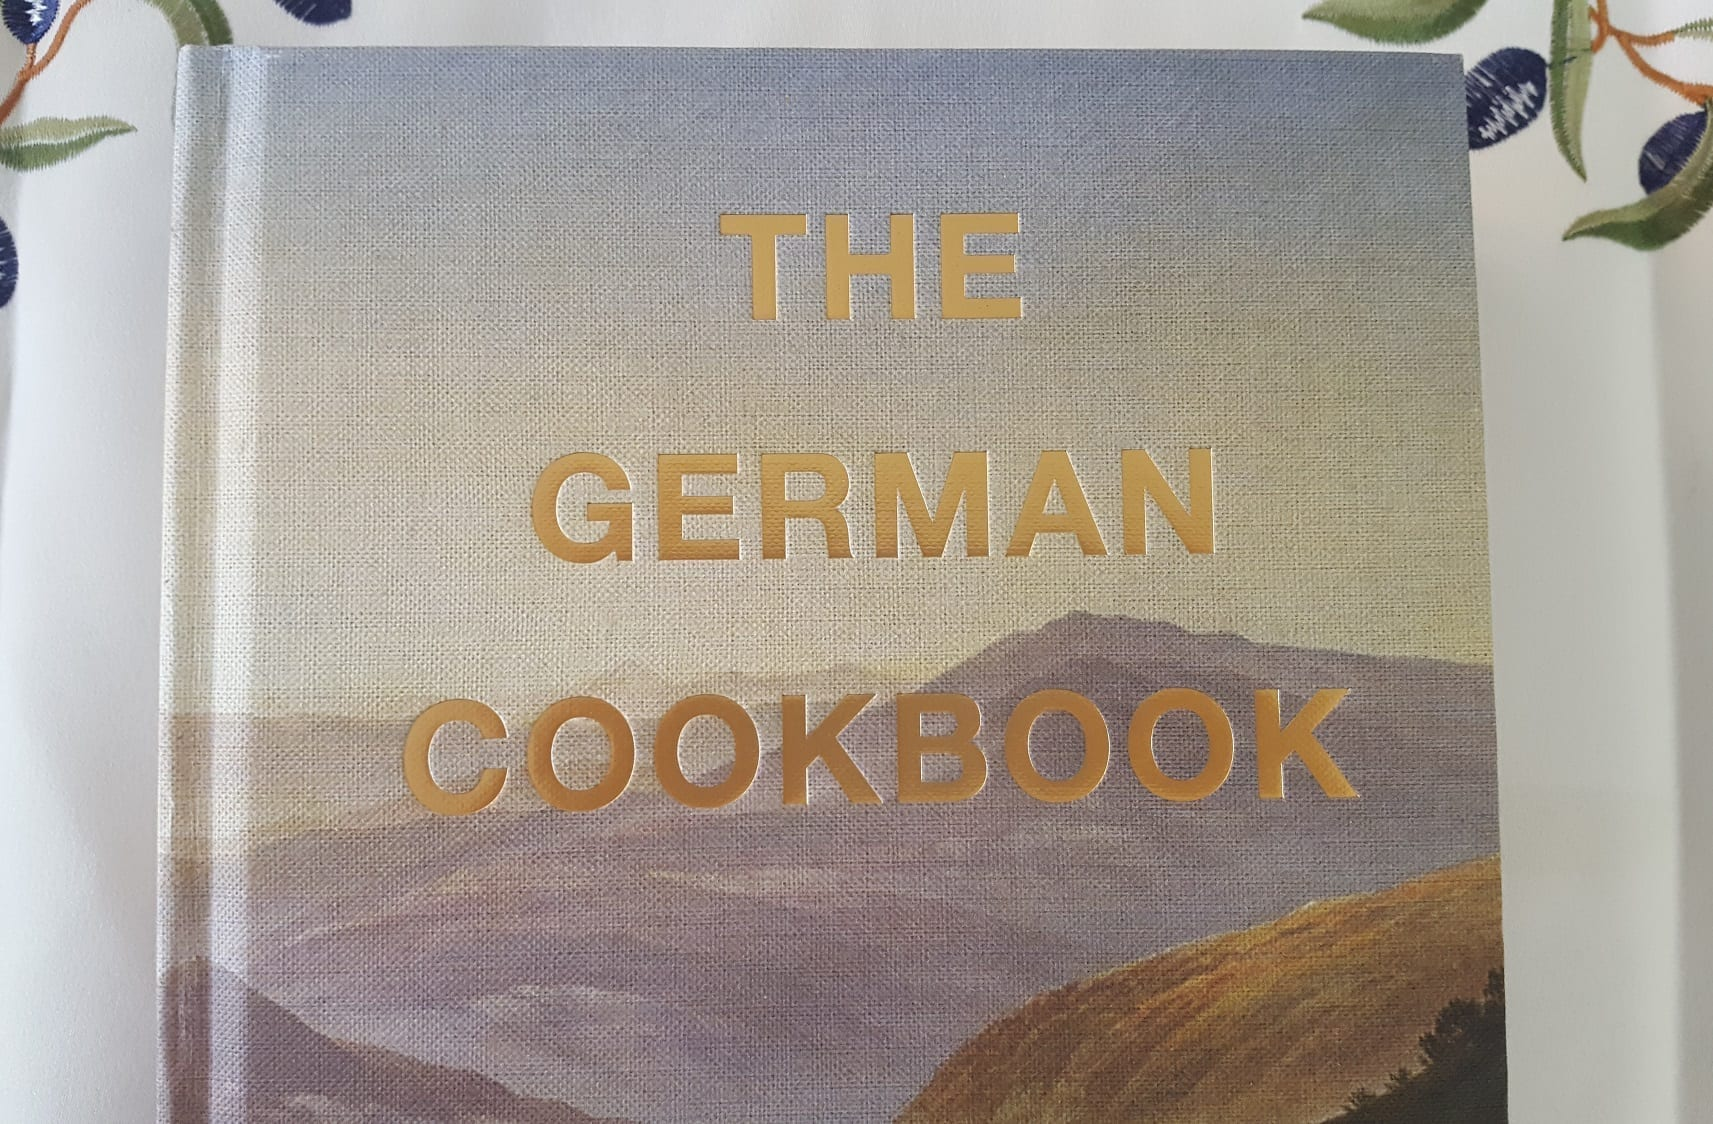 The German Cookbook by Alfons Schuhbeck- My Review